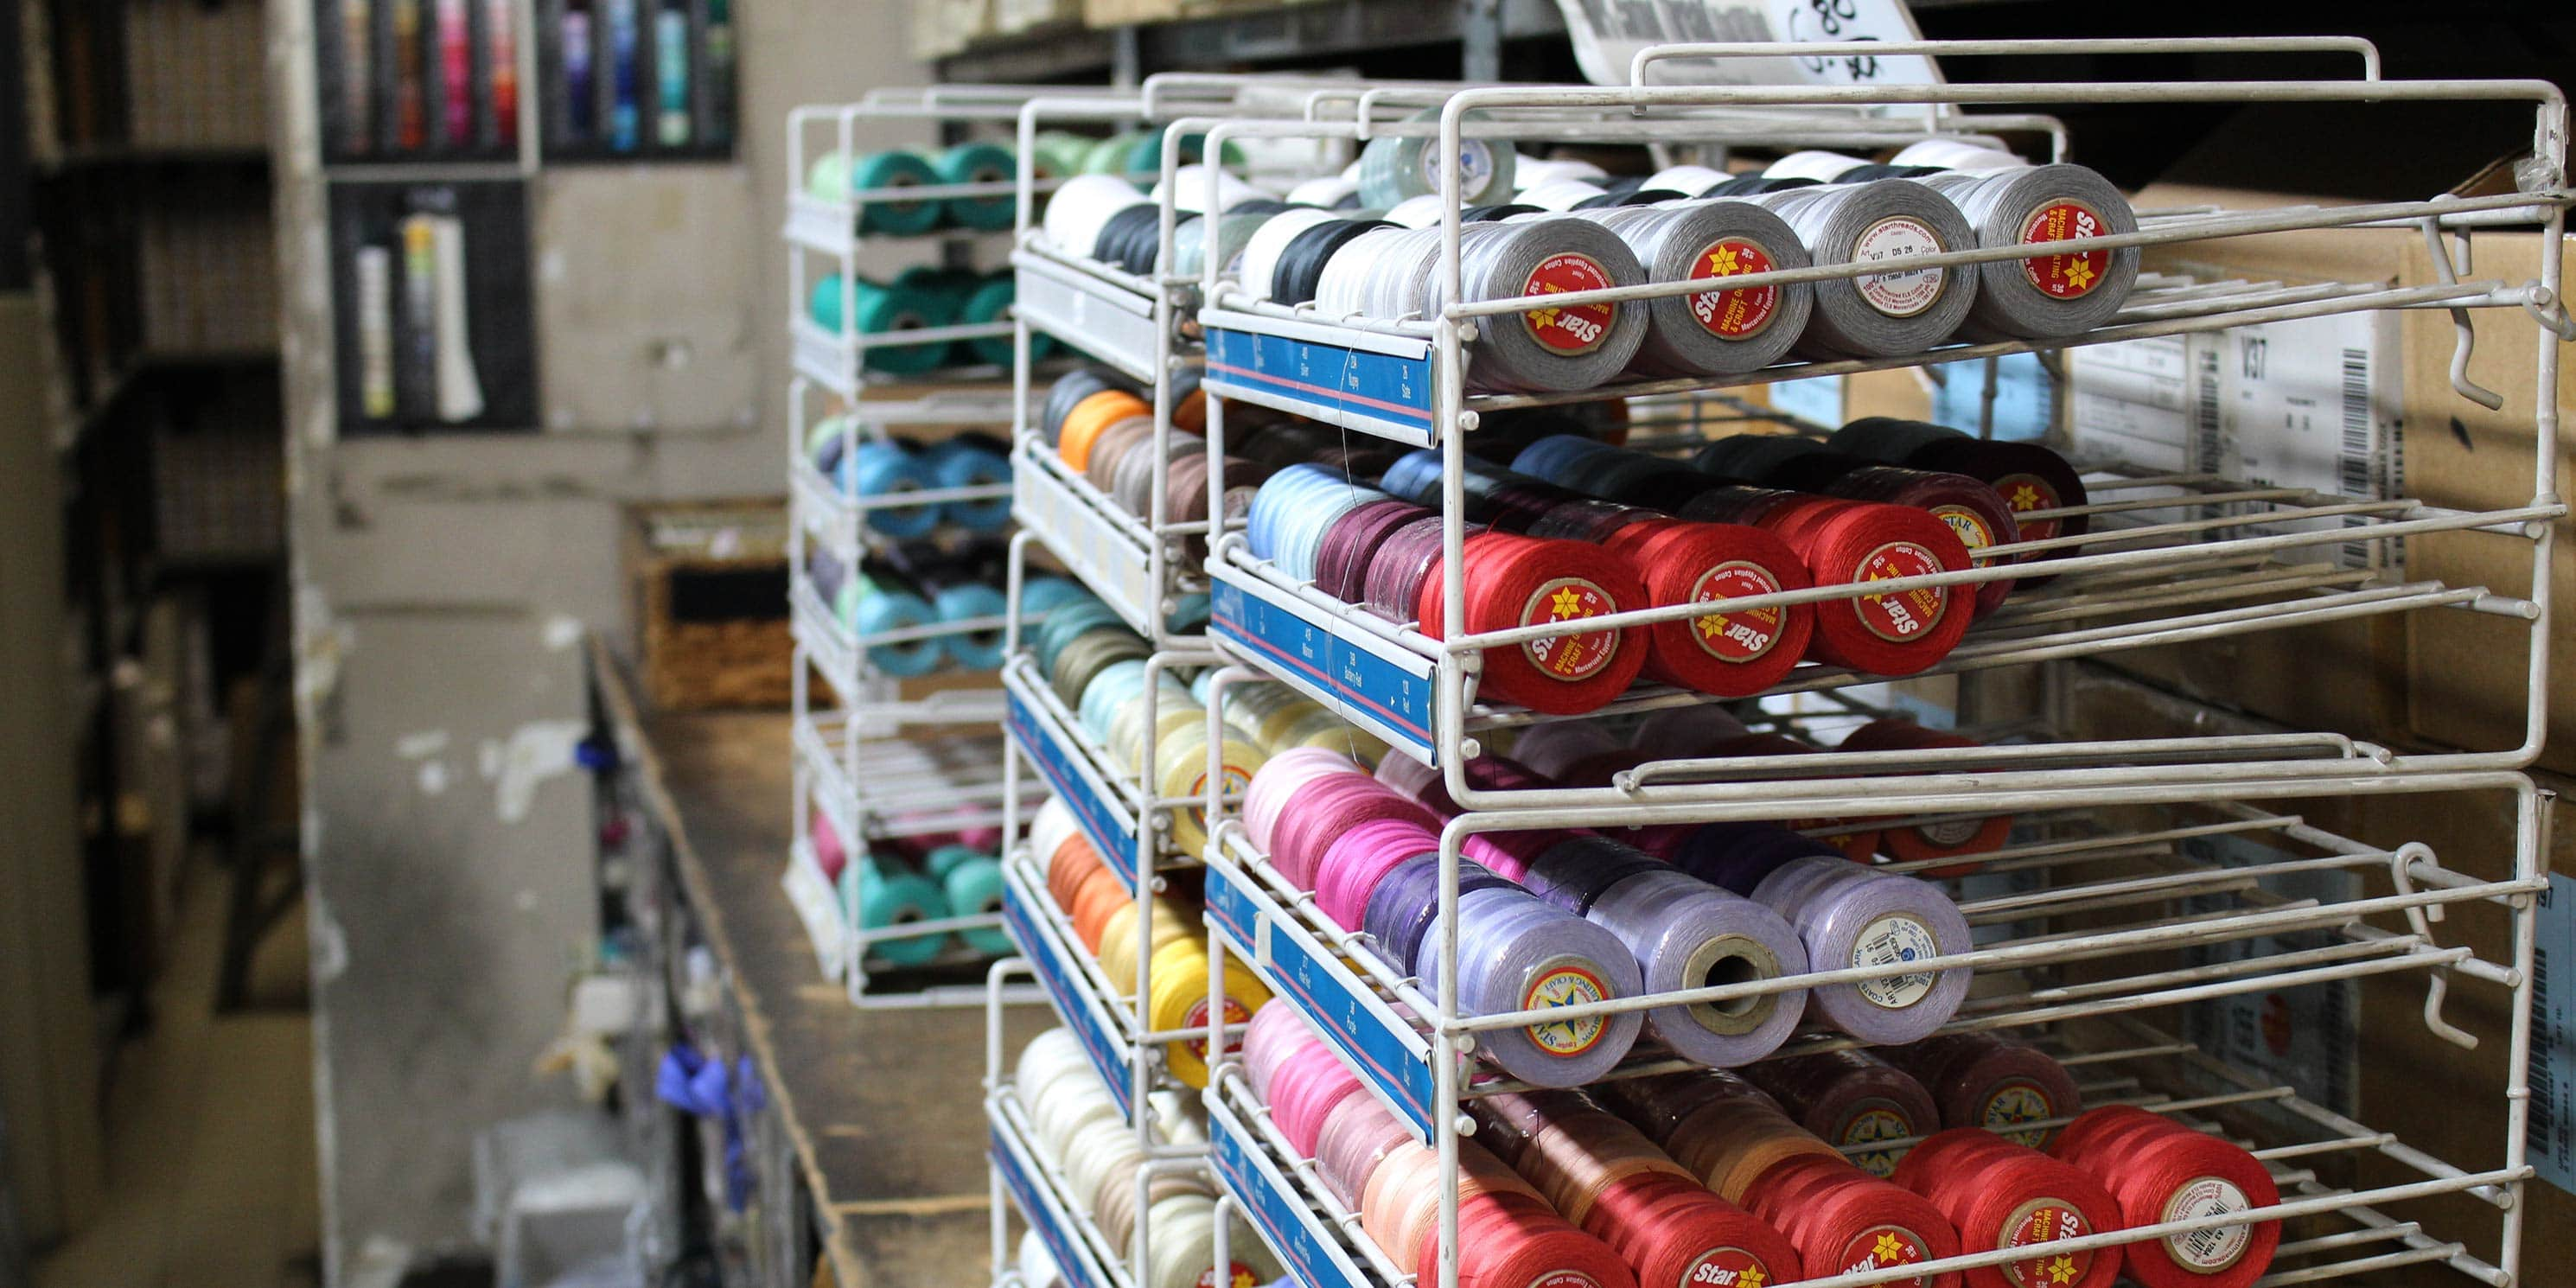 spools of thread on racks in Garment District shop